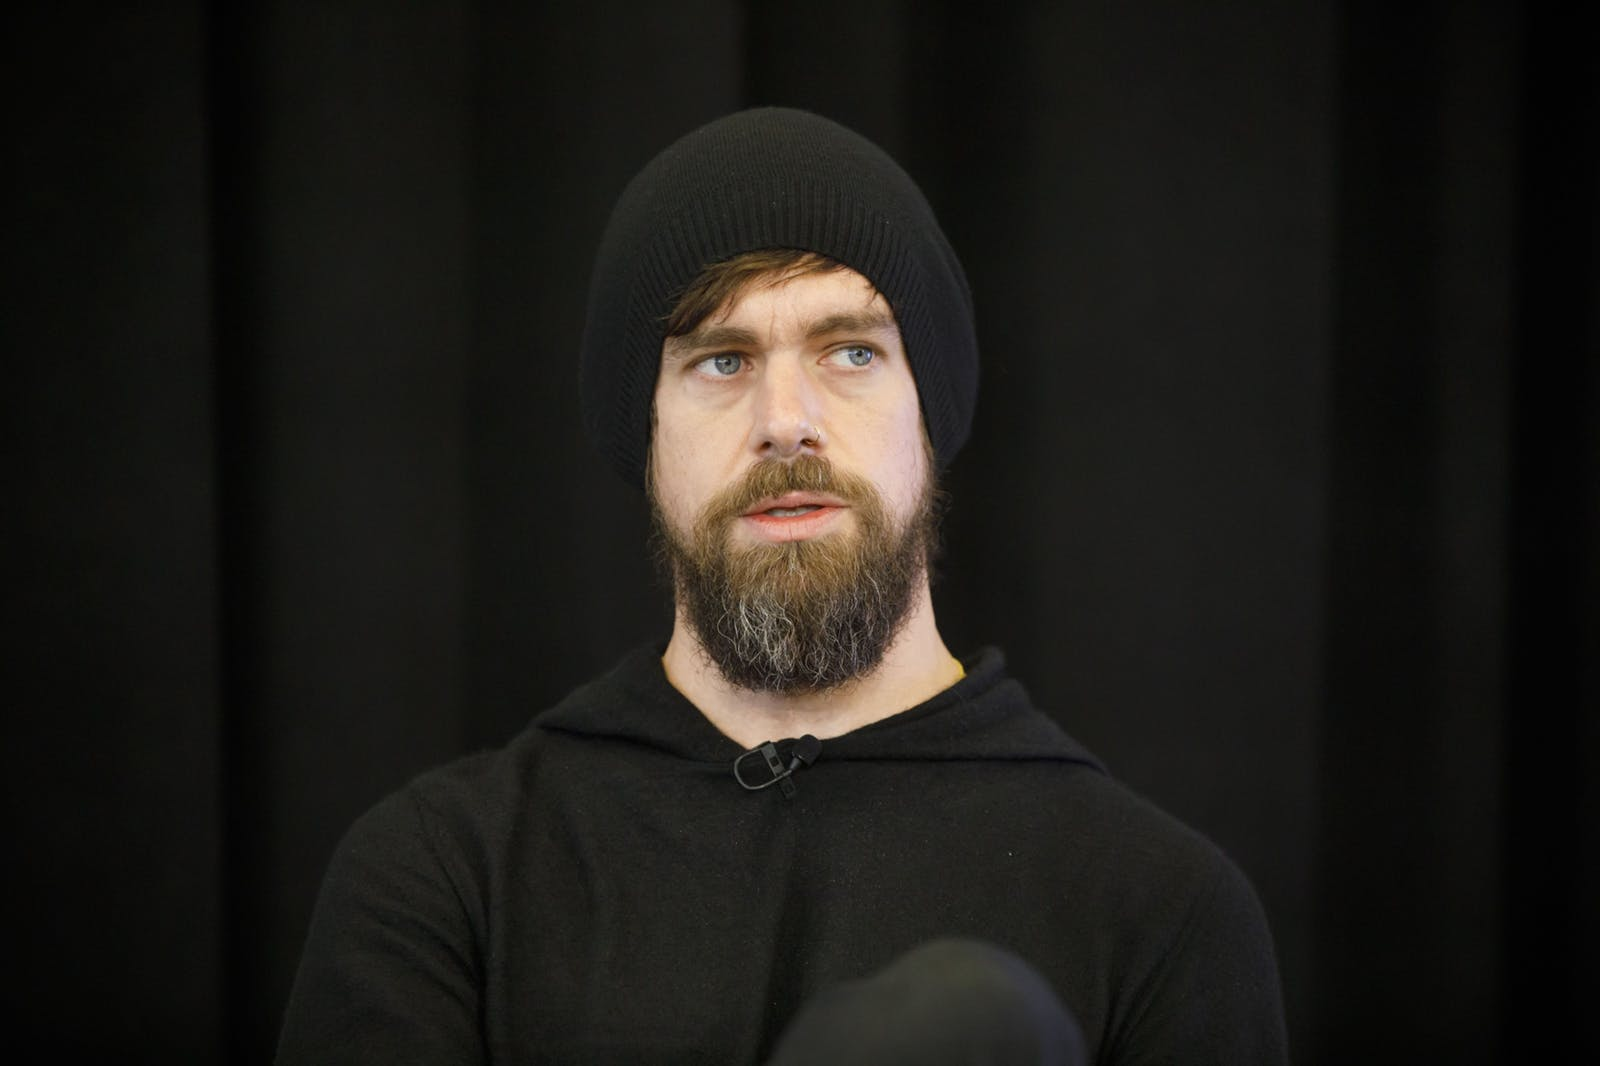 Square's Jack Dorsey. Photo by Bloomberg